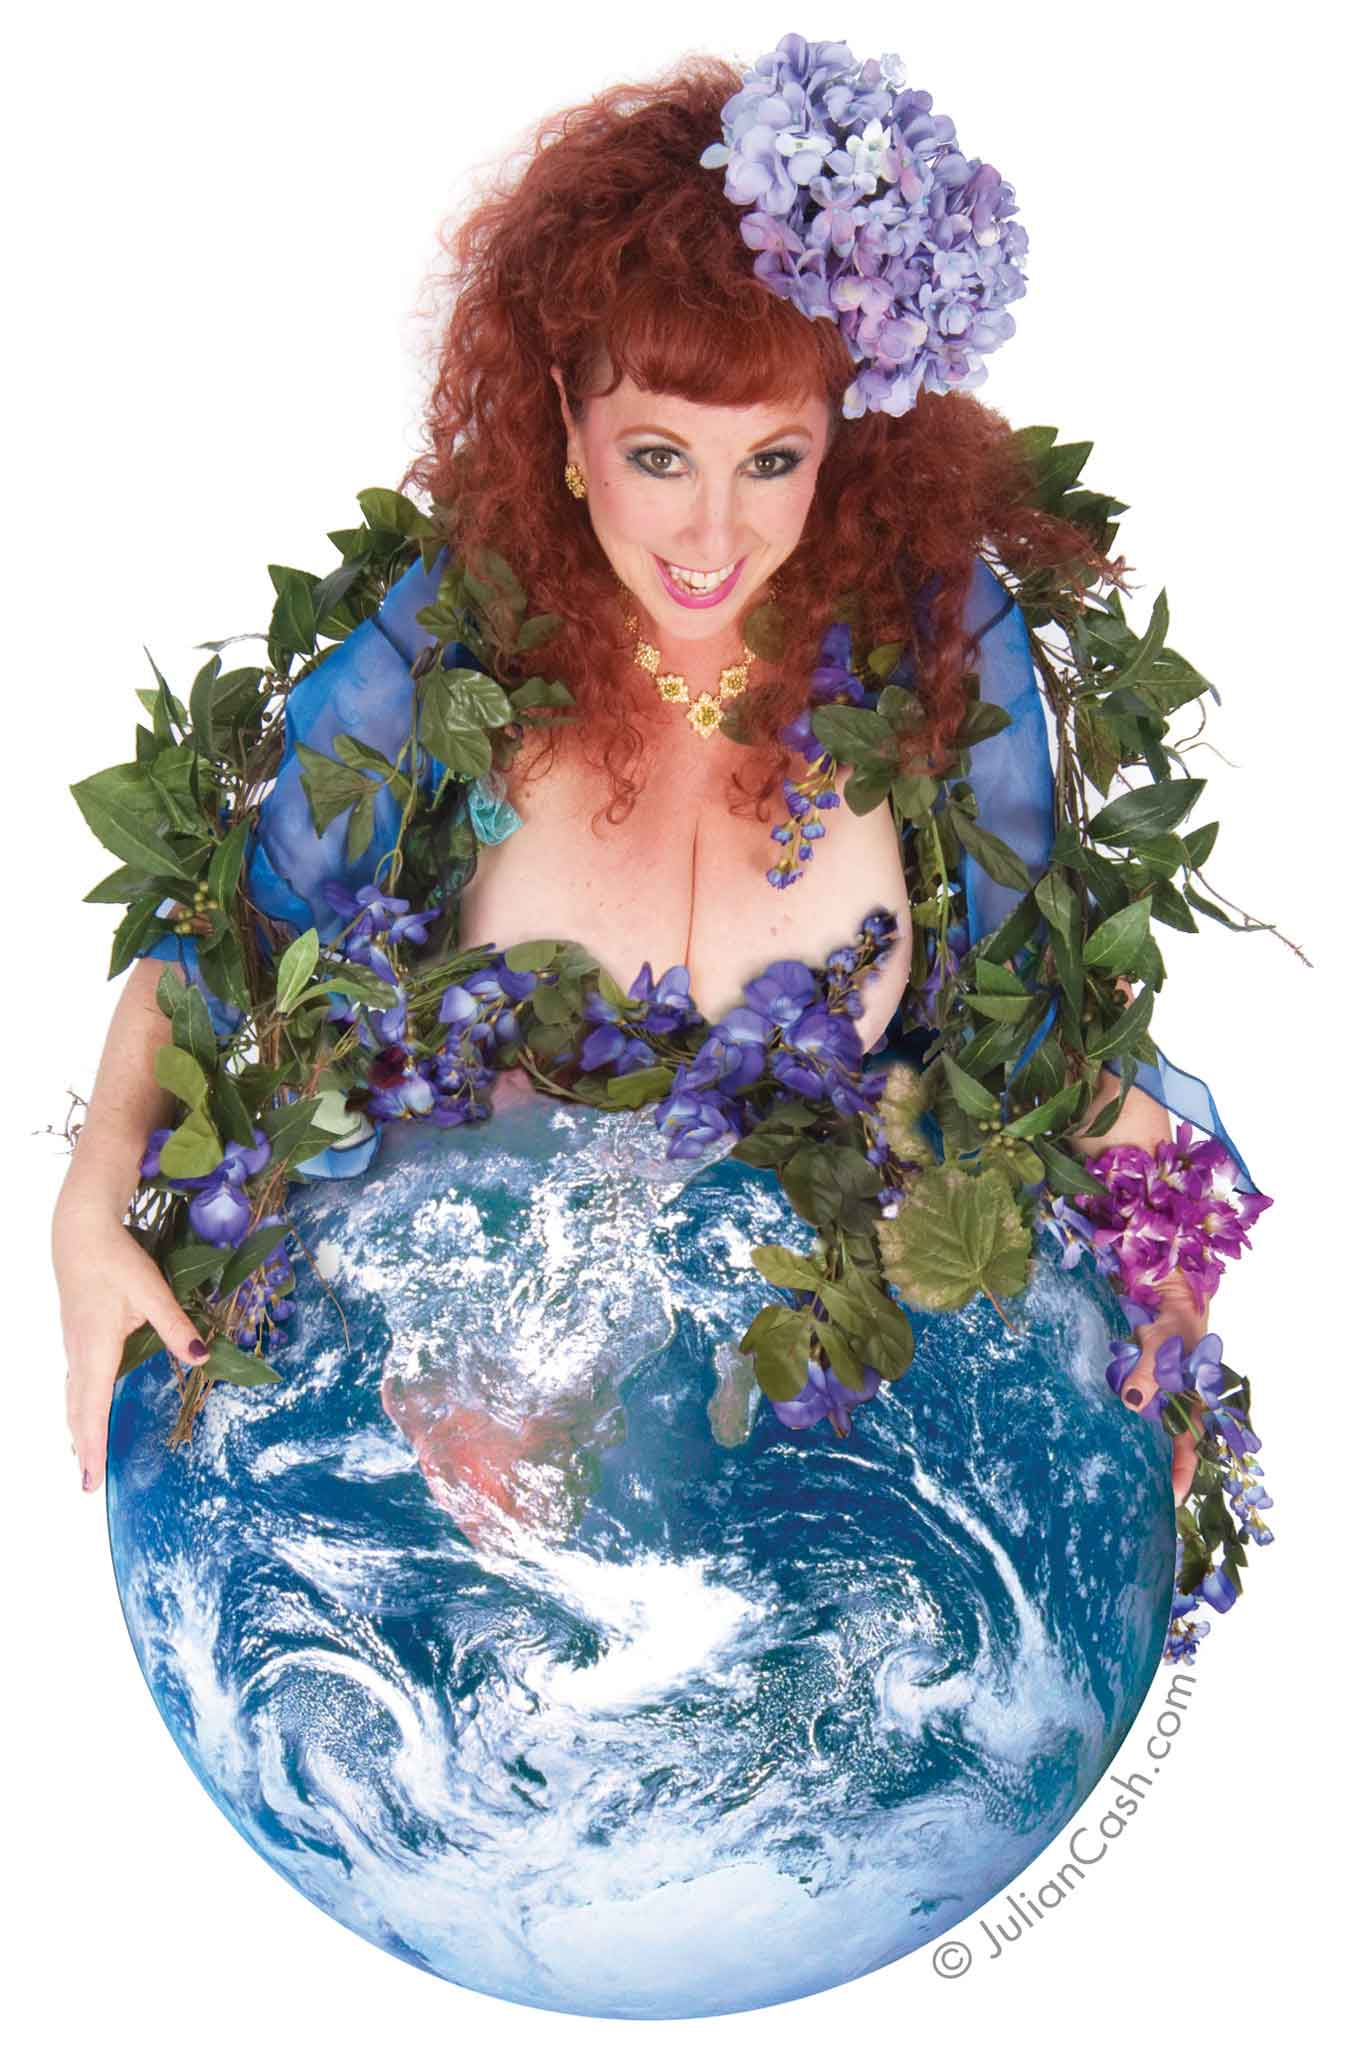 Annie Sprinkle, Earth Mother Modesty, photograph. Courtesy of the artist. Photo: Julian Cash.